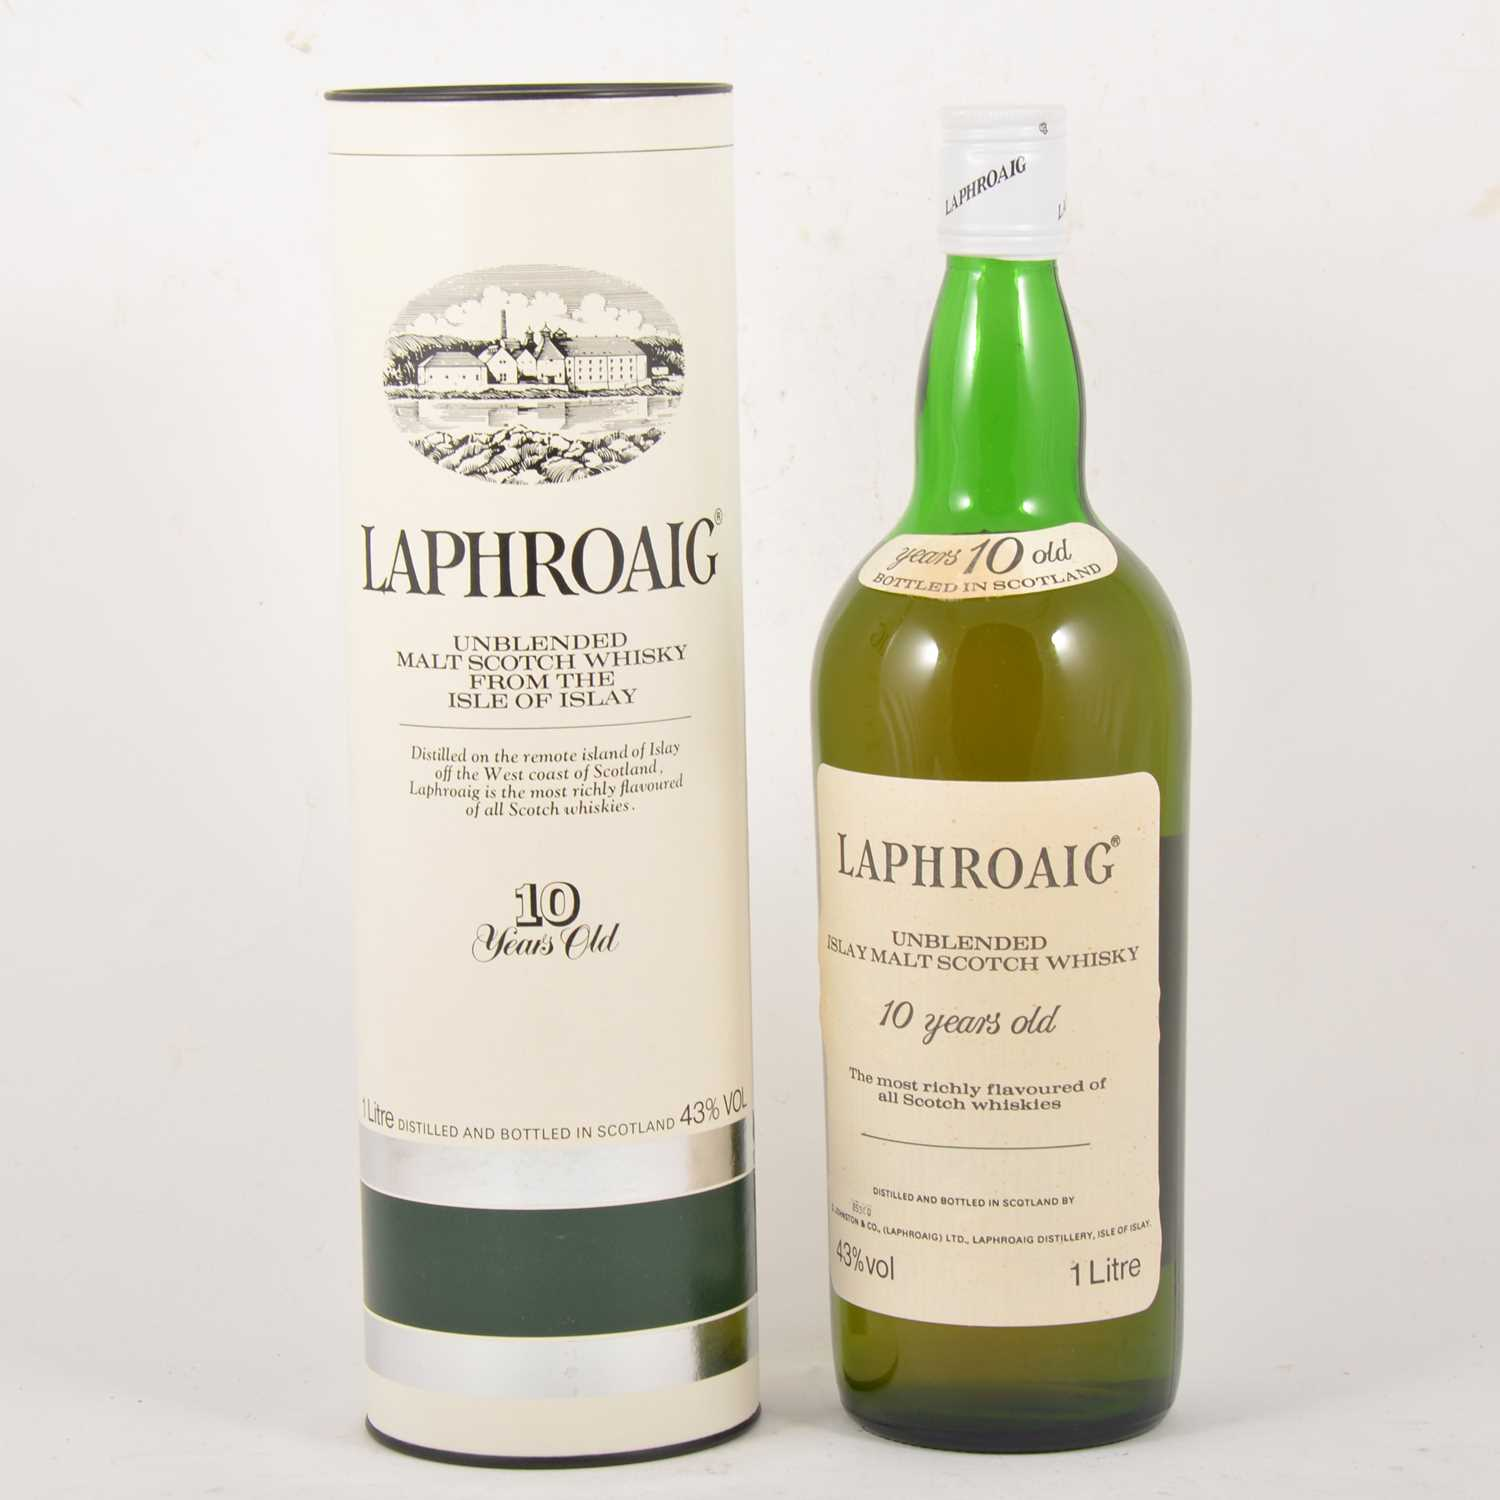 Lot 401 - Laphroaig, 10 year old, single Islay malt Scotch whisky, early 1980s bottling